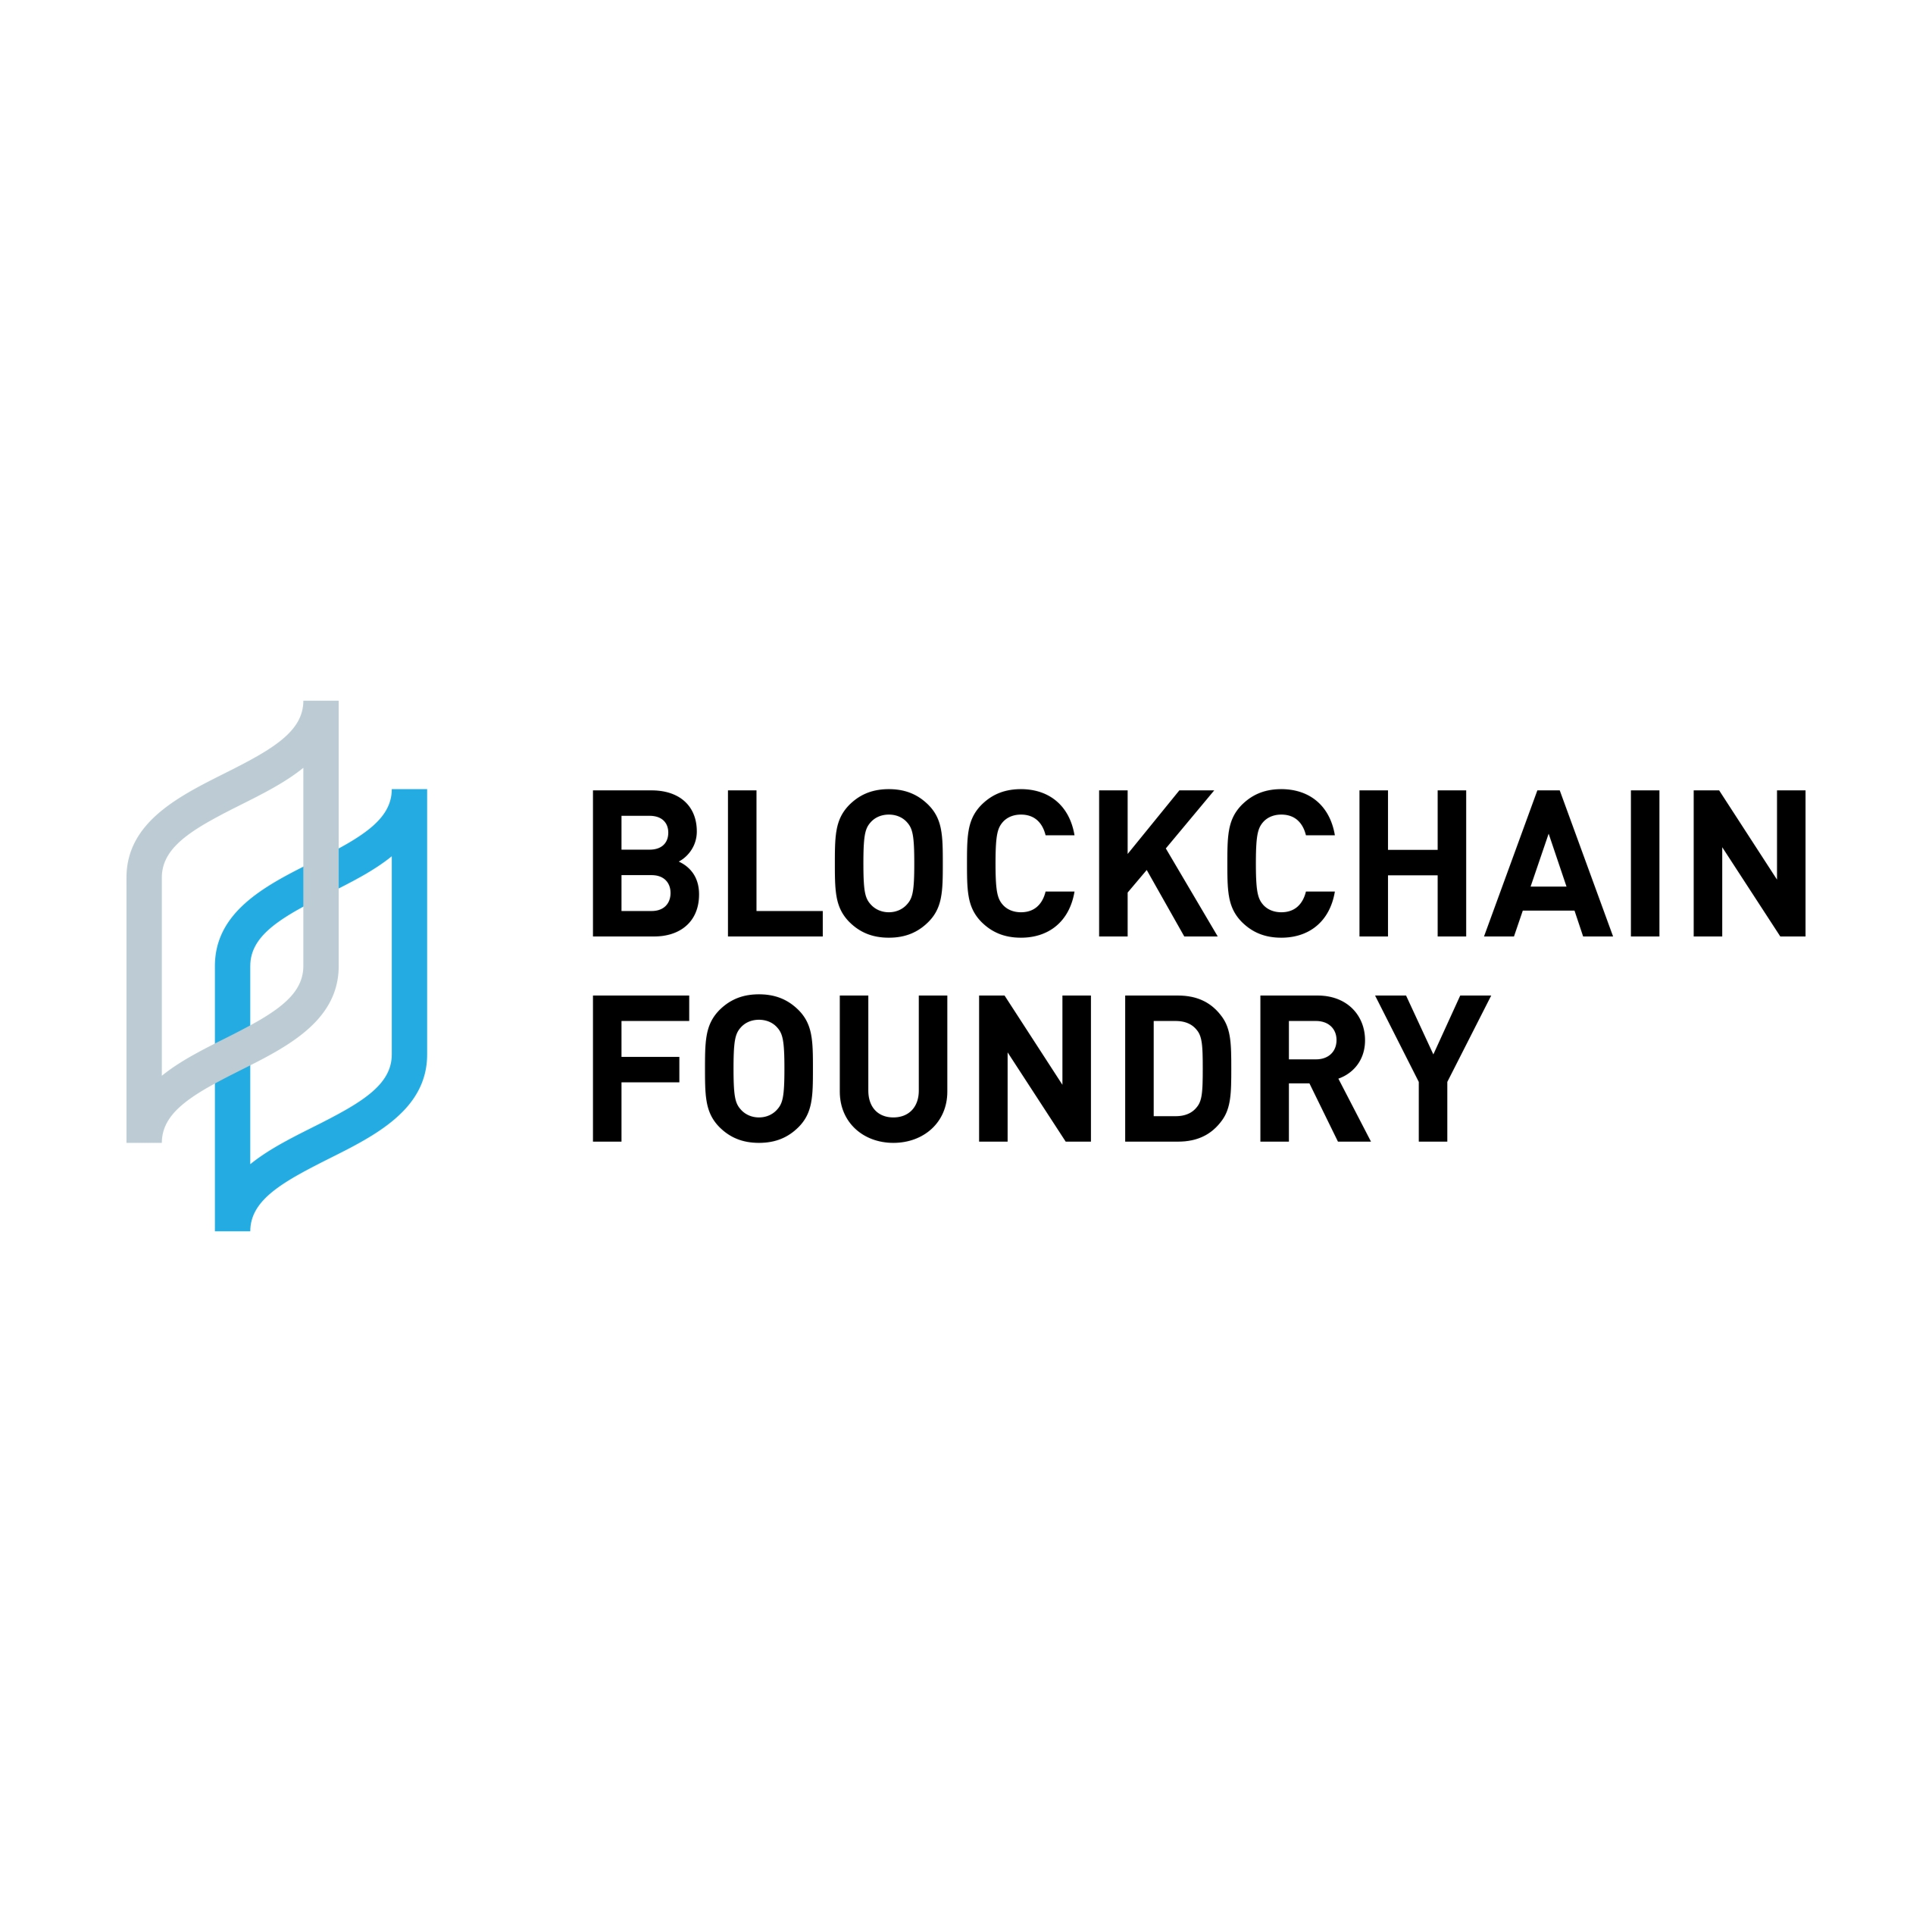 Blockchain Foundry Modifies Engagement with Investor Relations Consultant